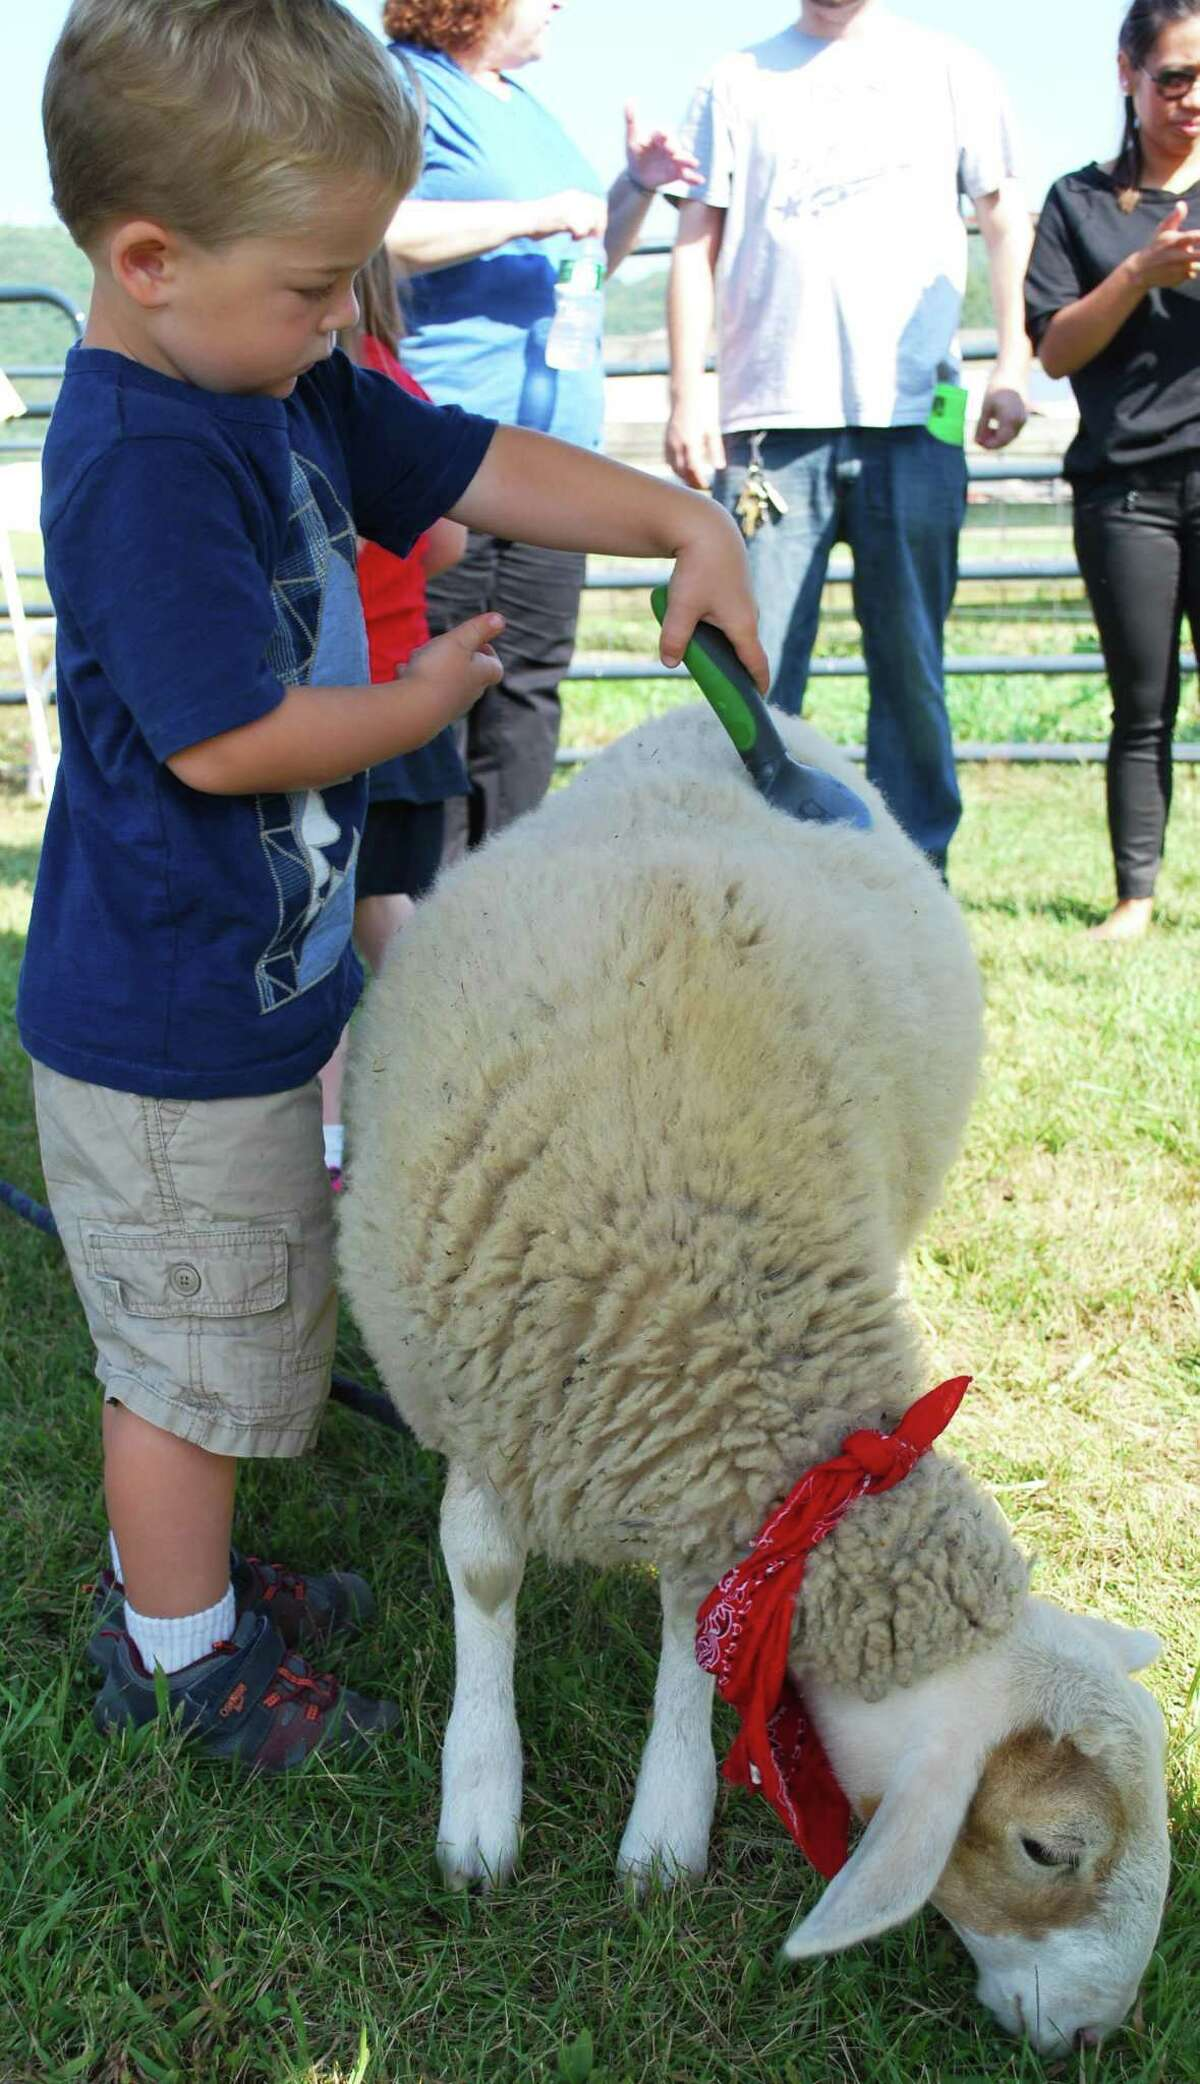 Sunny Valley Preserve in New Milford will hold Open Farm Day Sept. 21 this year.